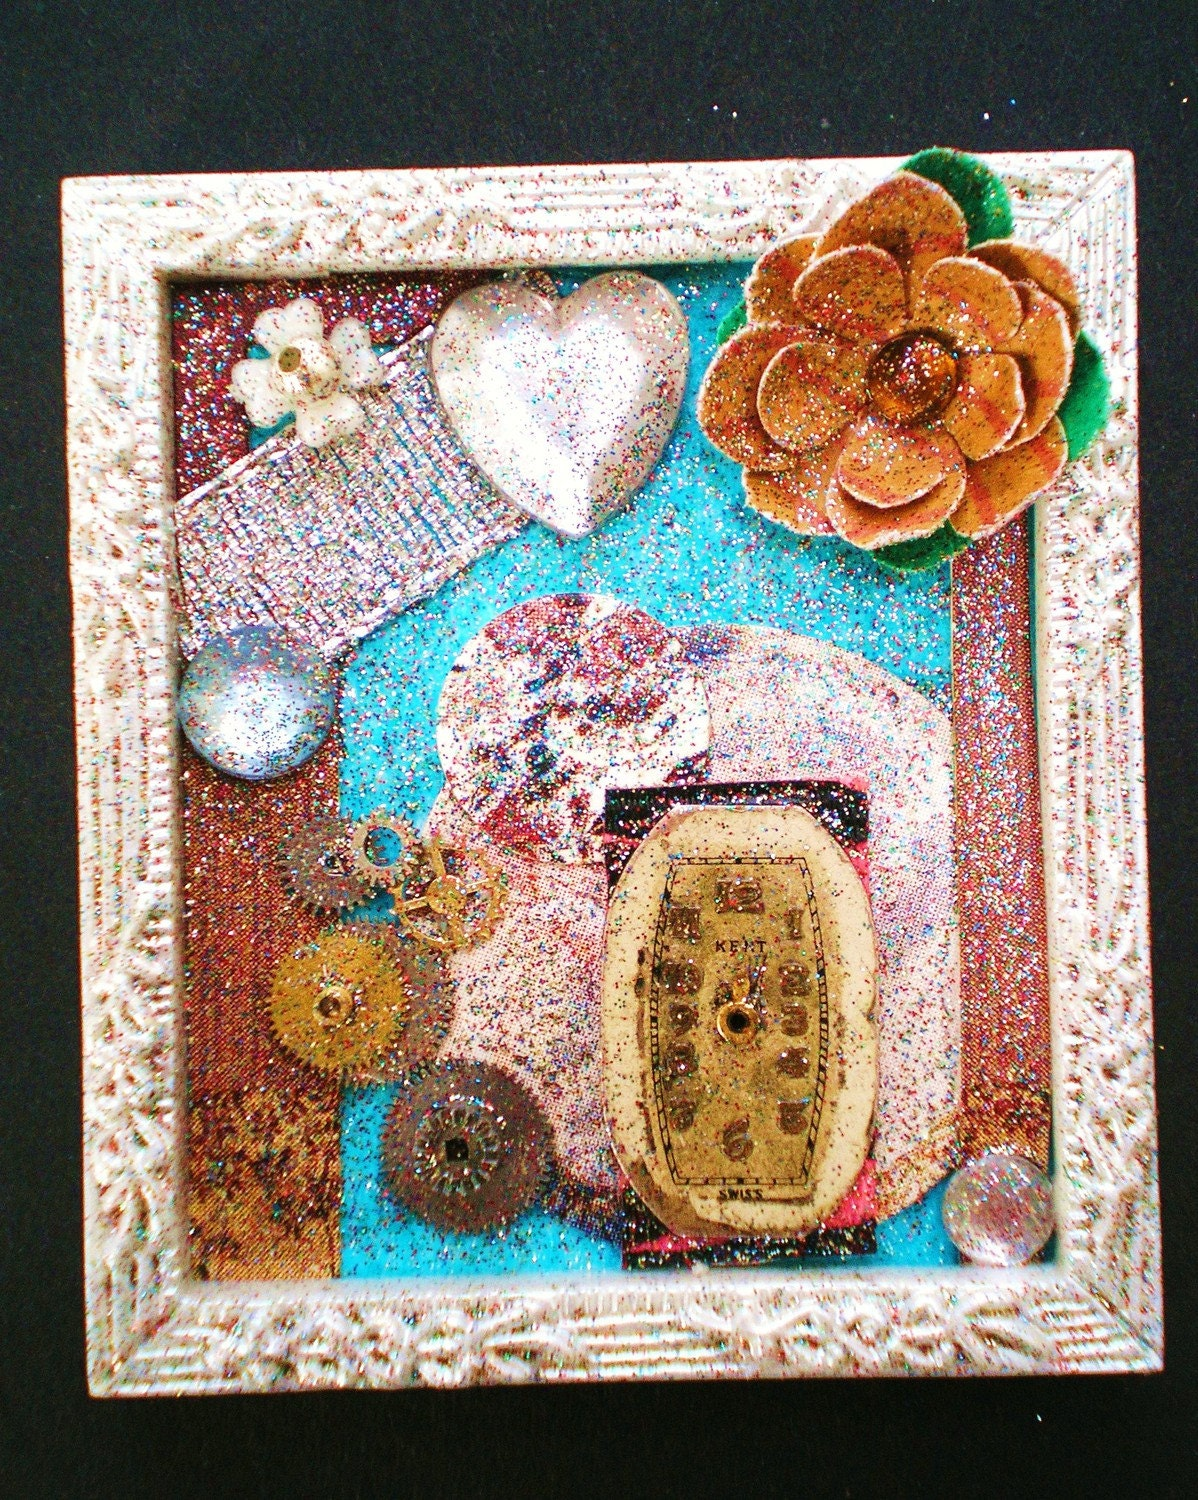 All My Days - Tiny Collage Mixed Media OOAK Framed Signed with Jewels Paper Flower Rhinestone Heart Ribbon Watch Parts